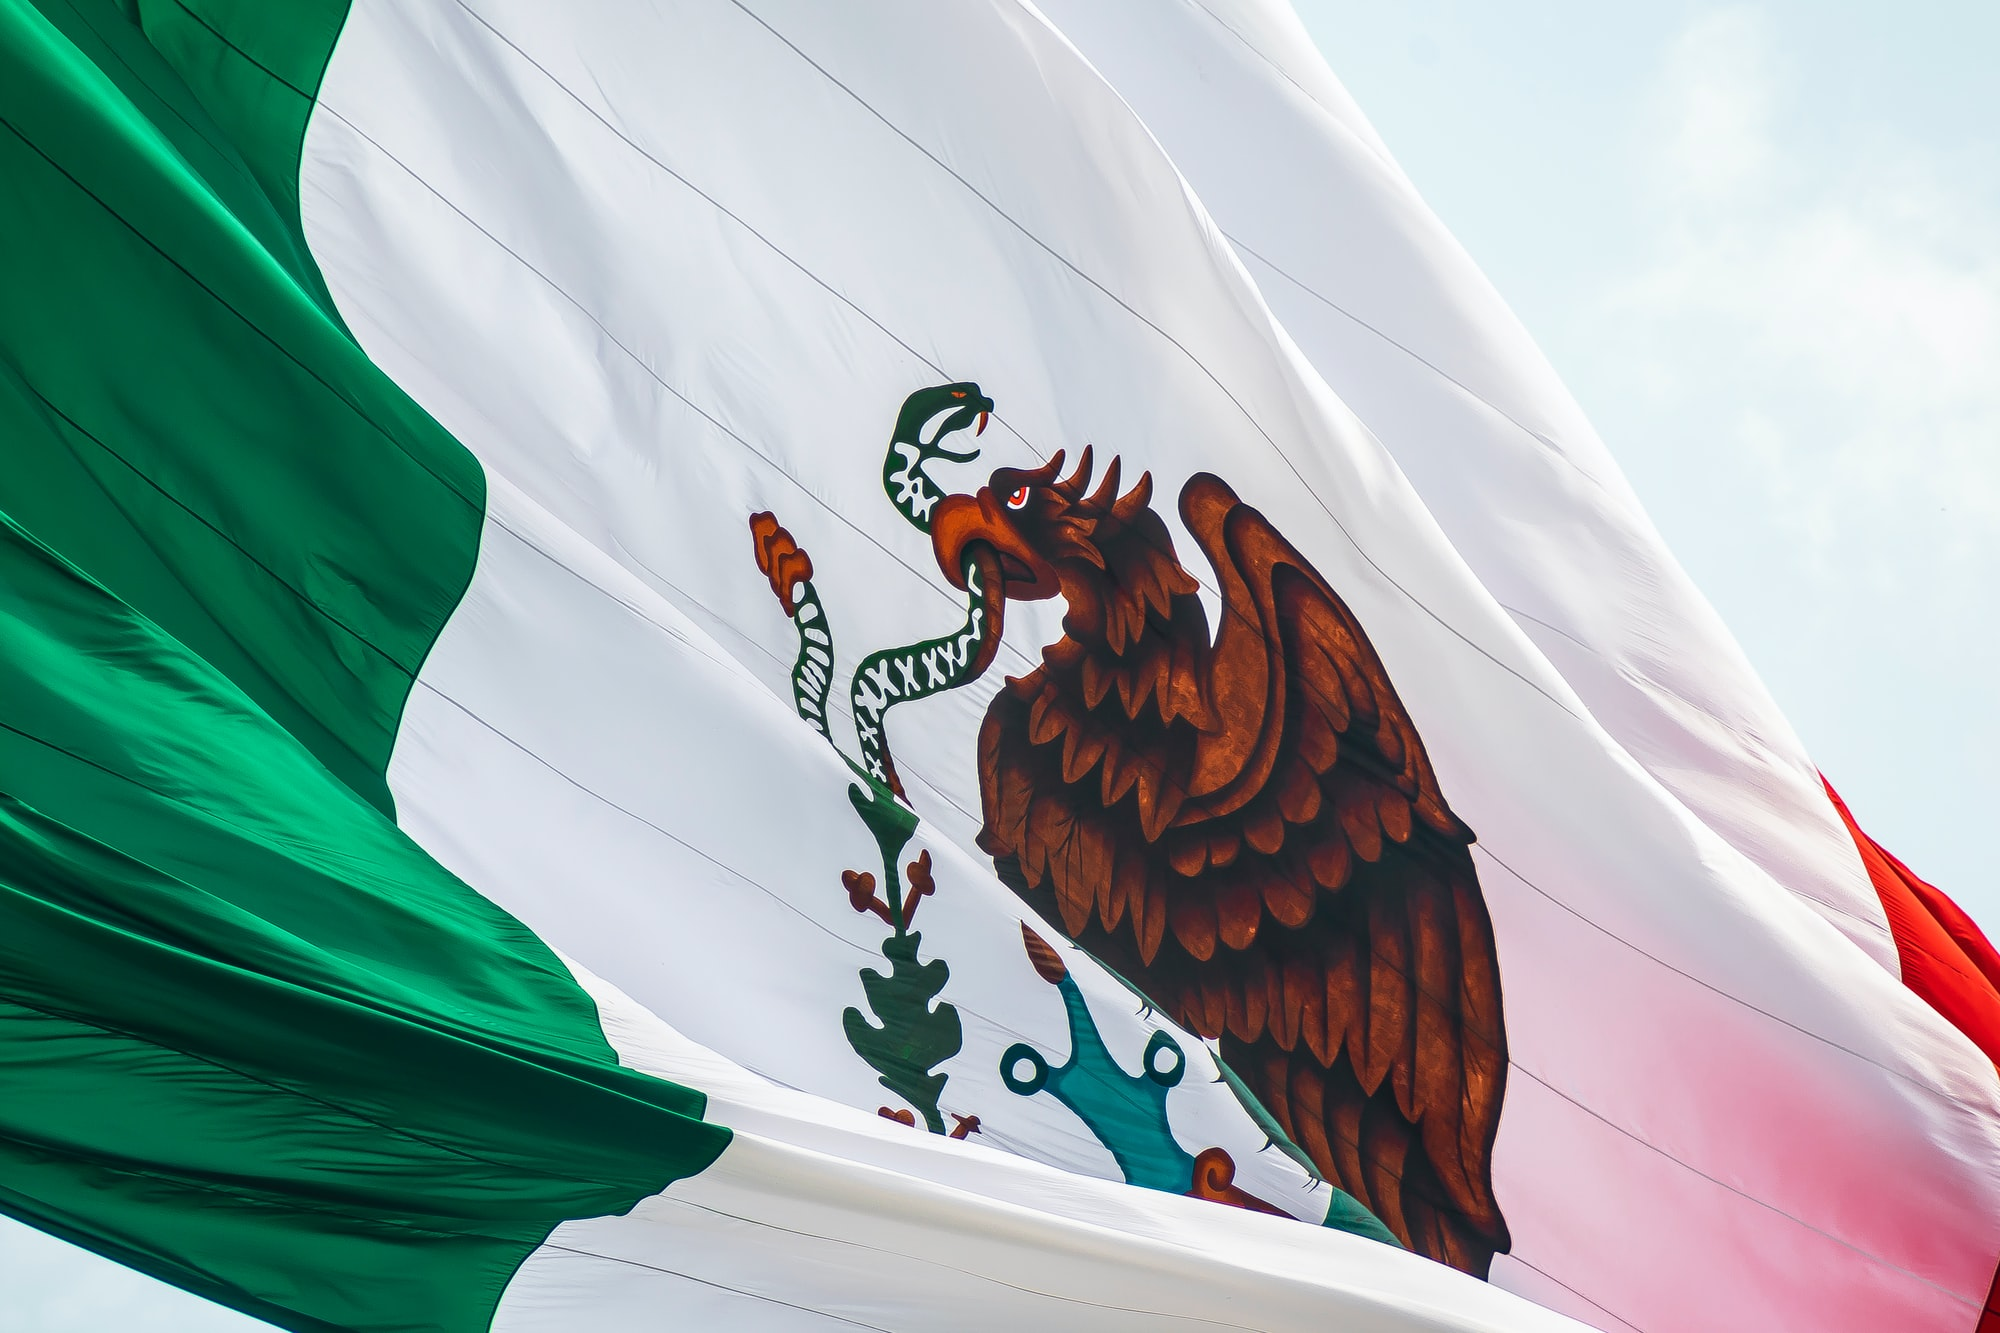 Mexico's Pandemics: Polarization, Crime, and COVID-19